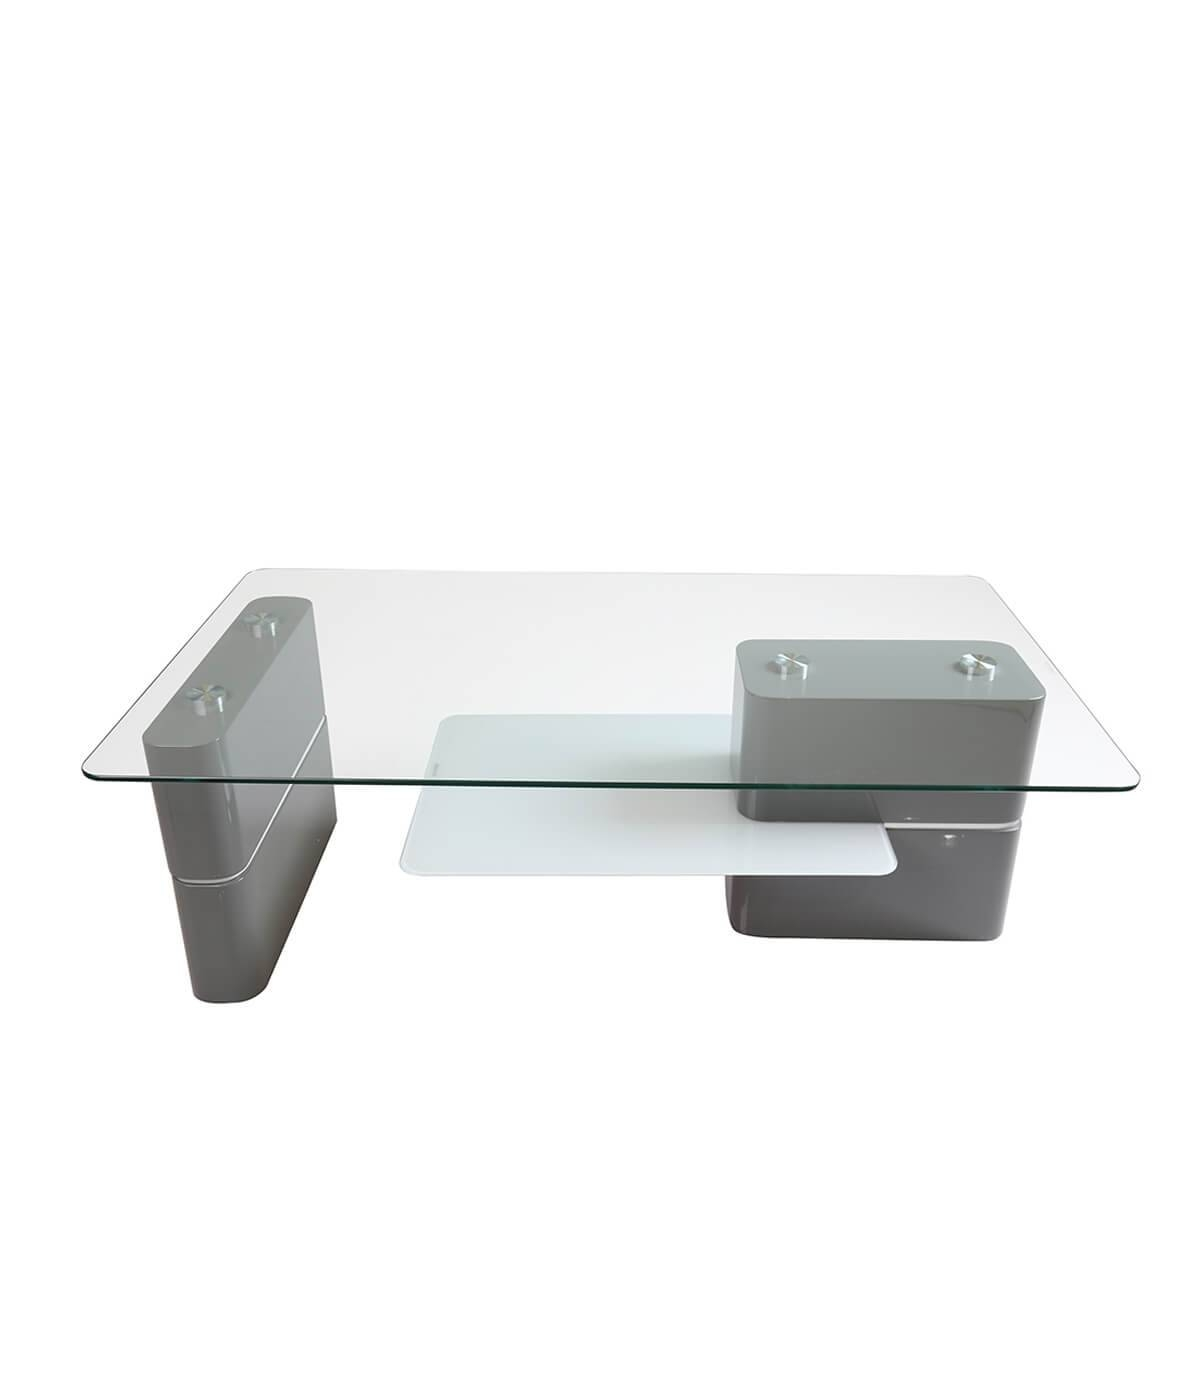 Aeon Furniture Tokyo Coffee Table Twist Glass Ct3001 Sw009 Amwal regarding Tokyo Coffee Tables (Image 2 of 30)